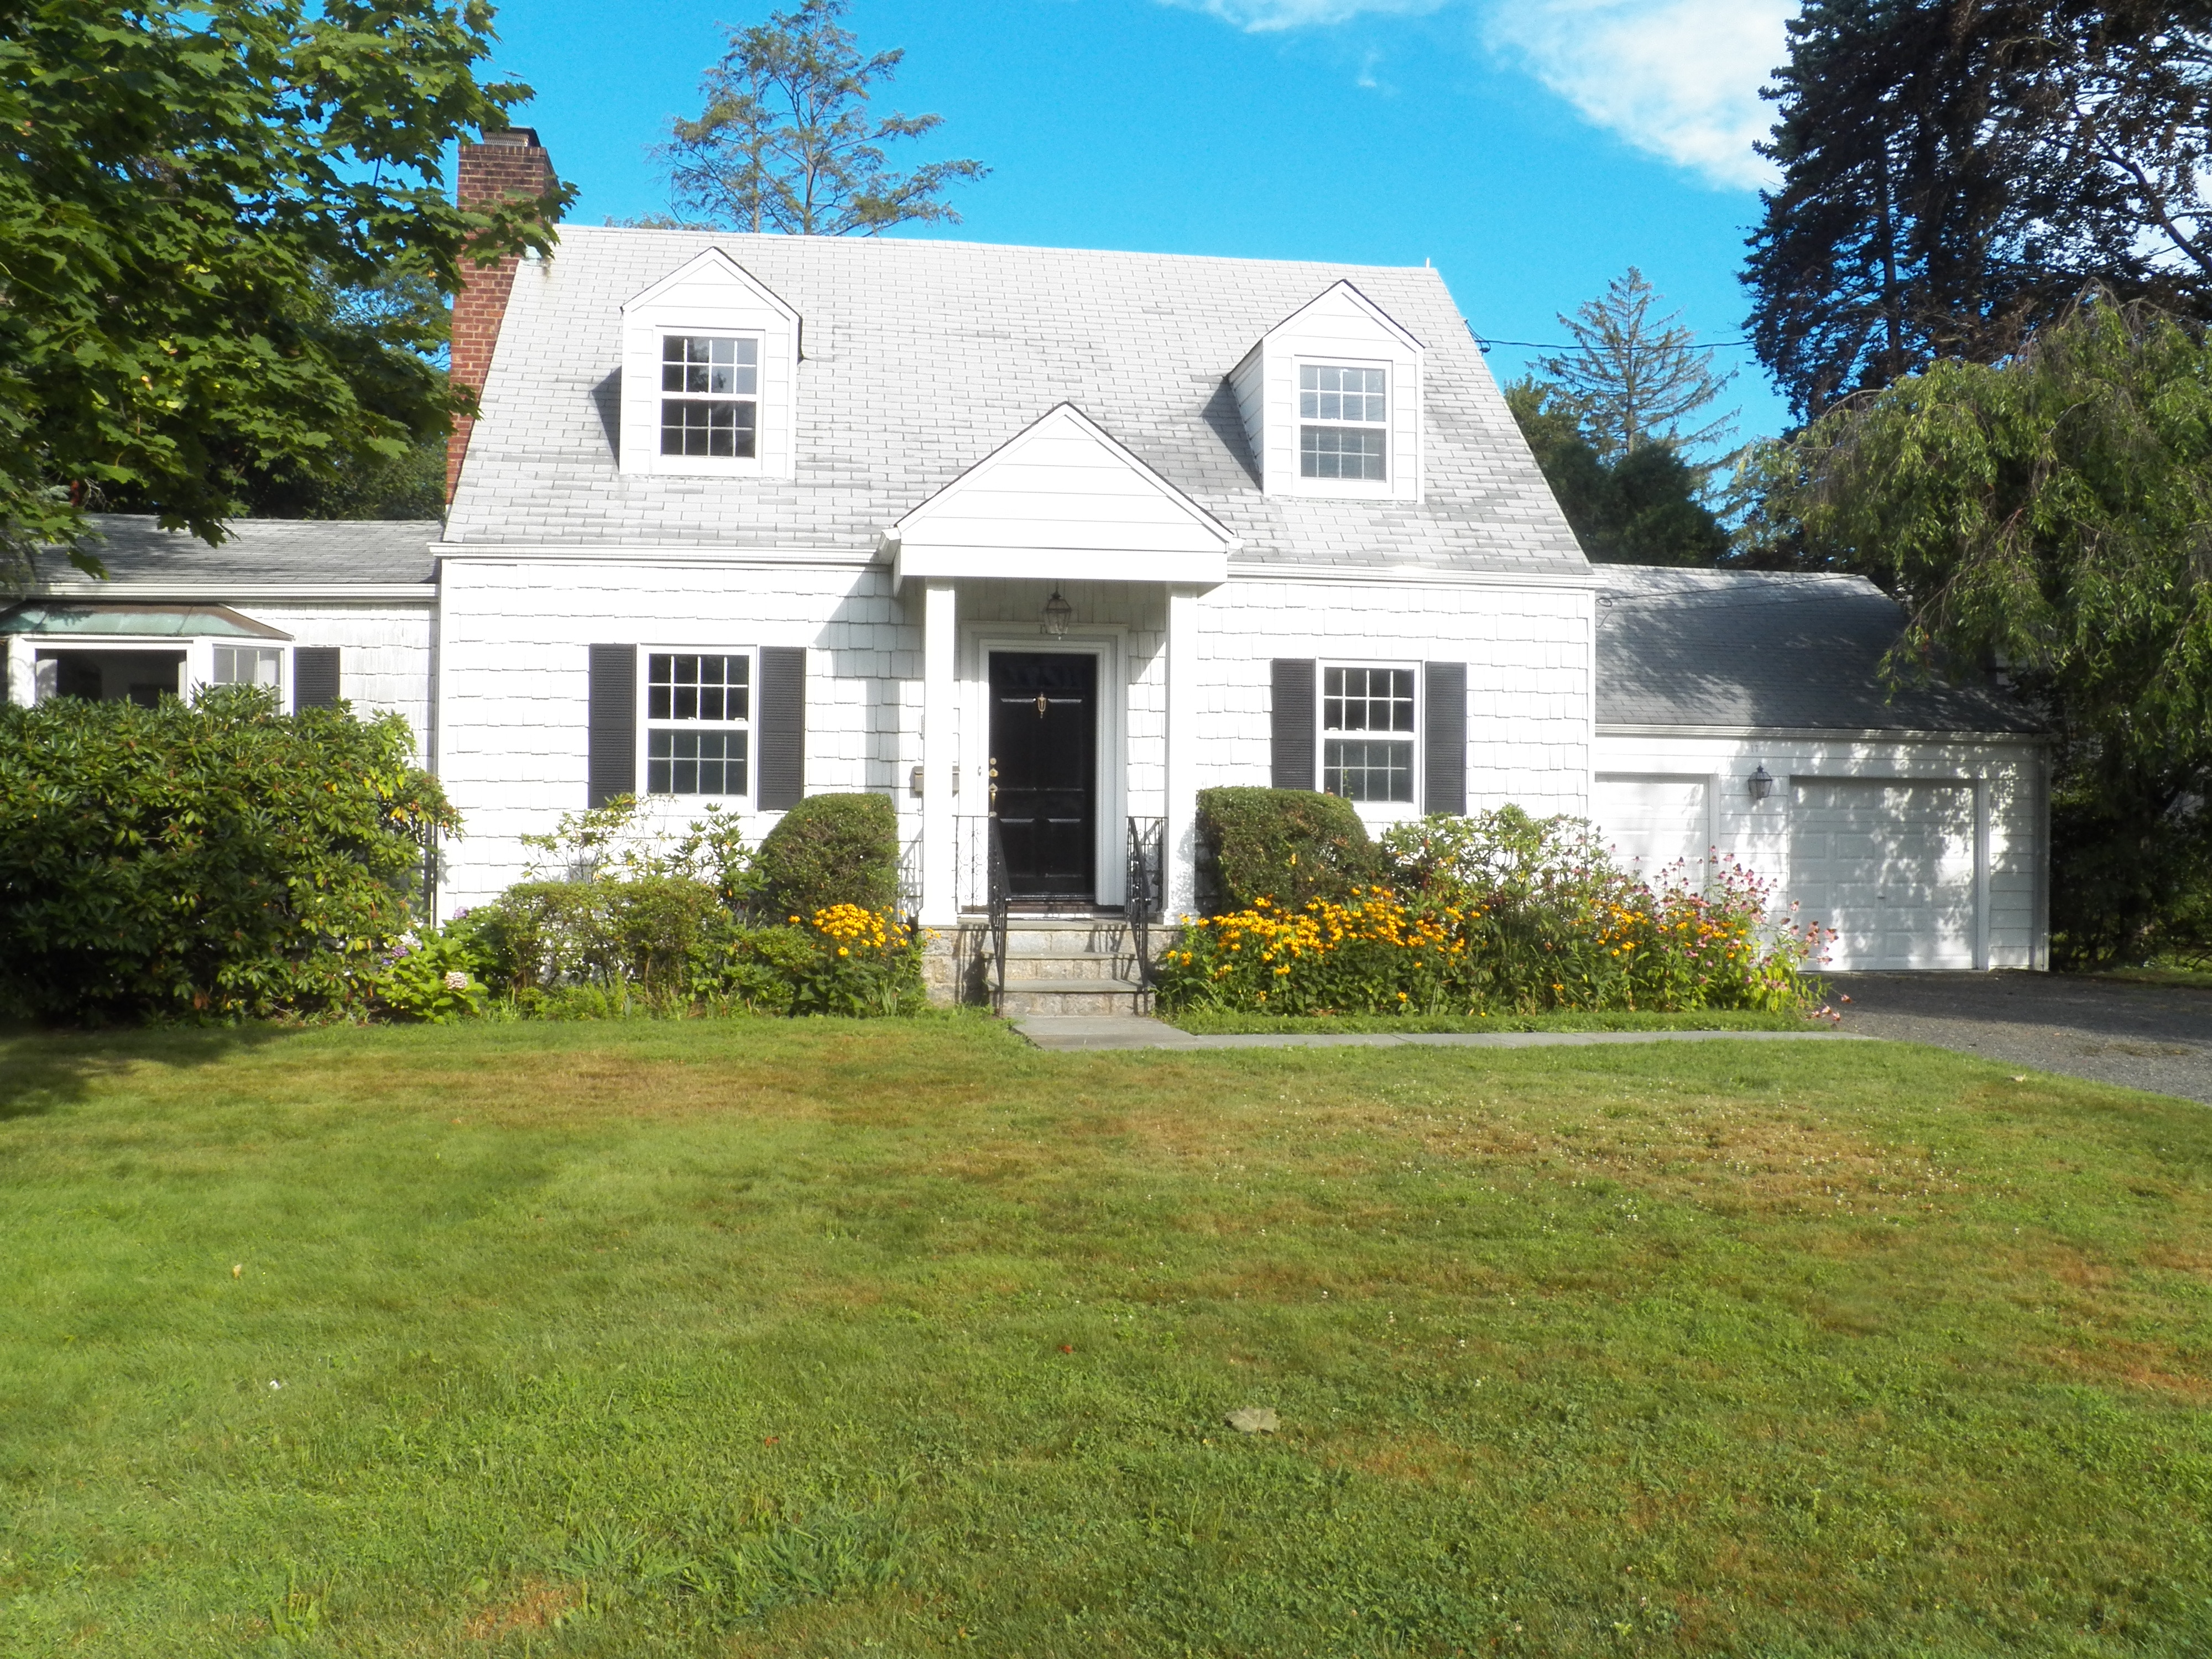 Single Family Home for Sale at Center Hall Colonial 17 Wilmot Circle Scarsdale, New York 10583 United States